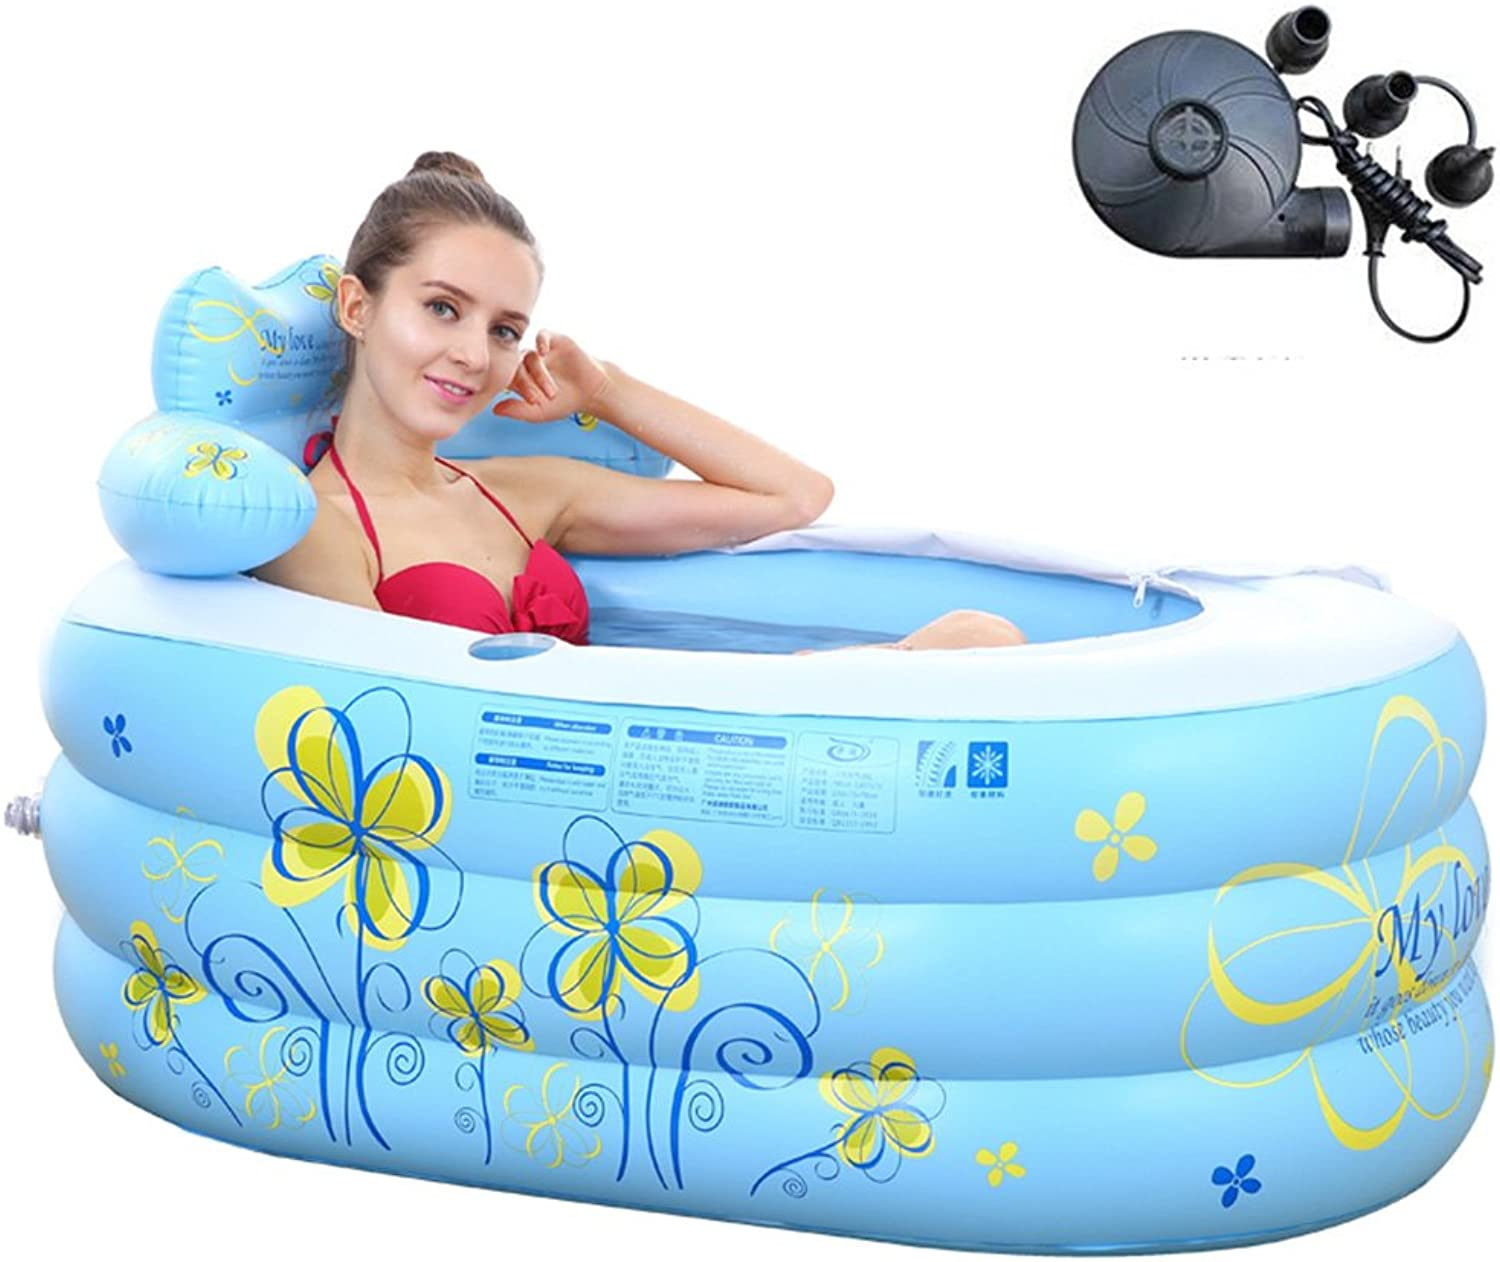 Xi Man Shop Inflatable bath barrel thickened insulation bath inflatable folding bath soak bath thick insulation, double drainage system, with cover (color   bluee, Size   Hand pump)